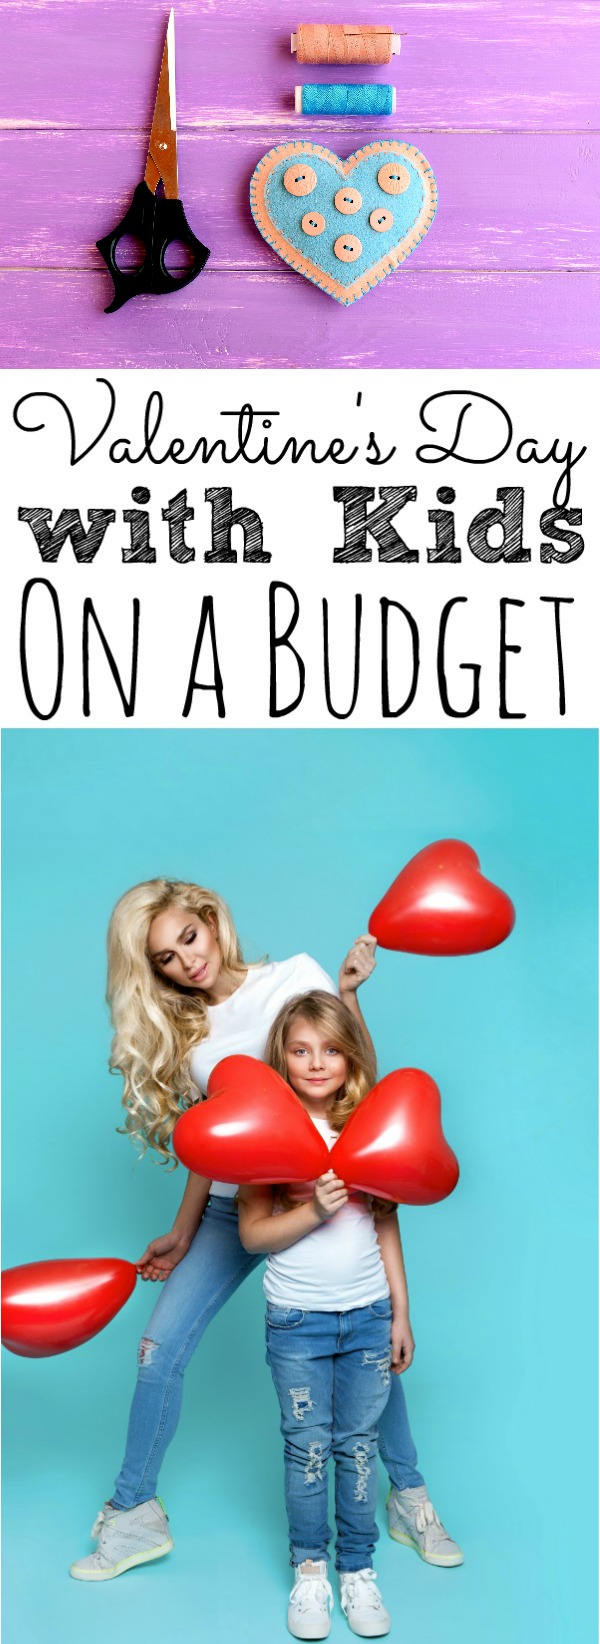 Valentine's Day with Kids On a Budget